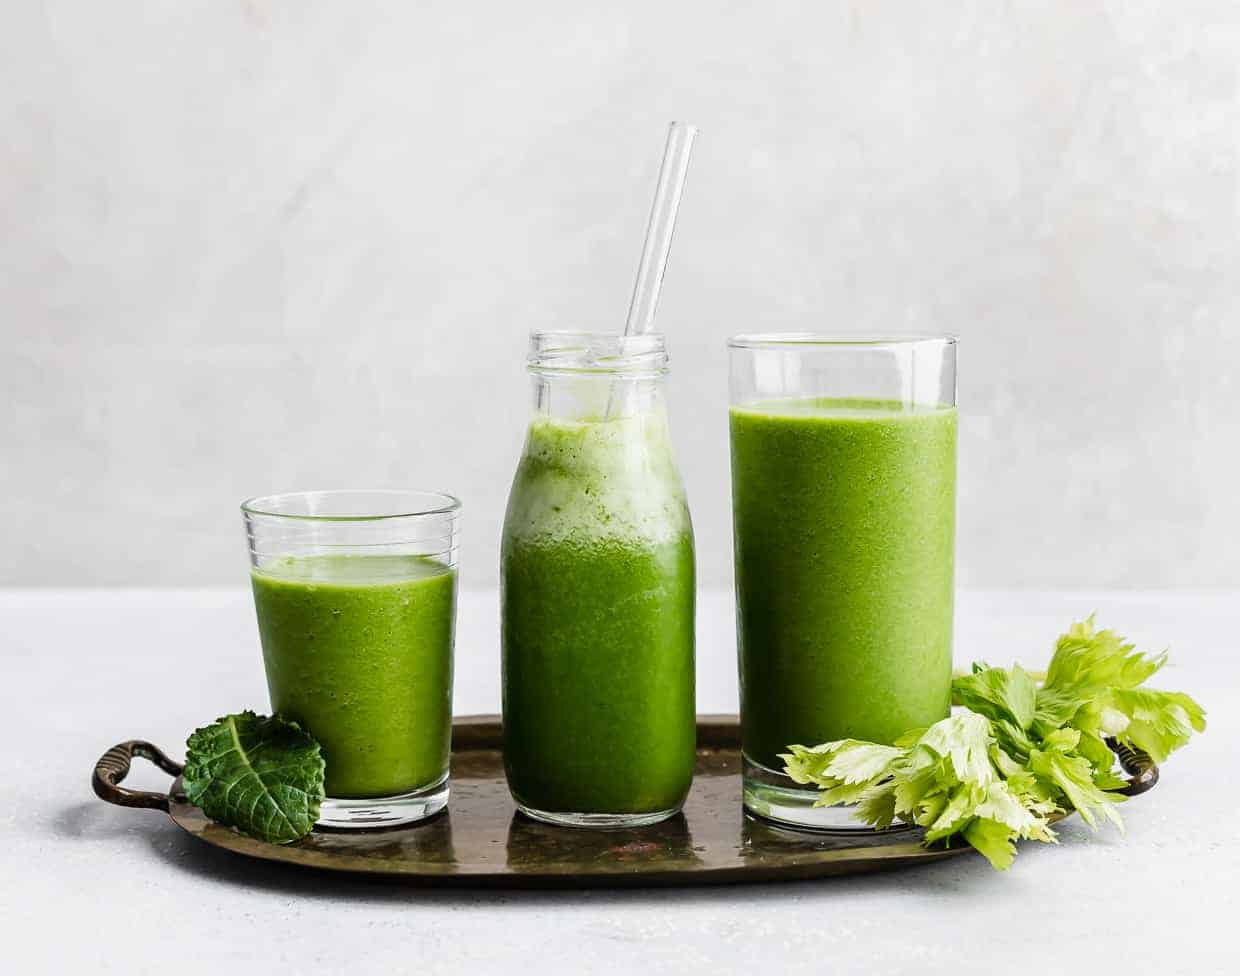 Three glasses full of green celery drink against a white background.